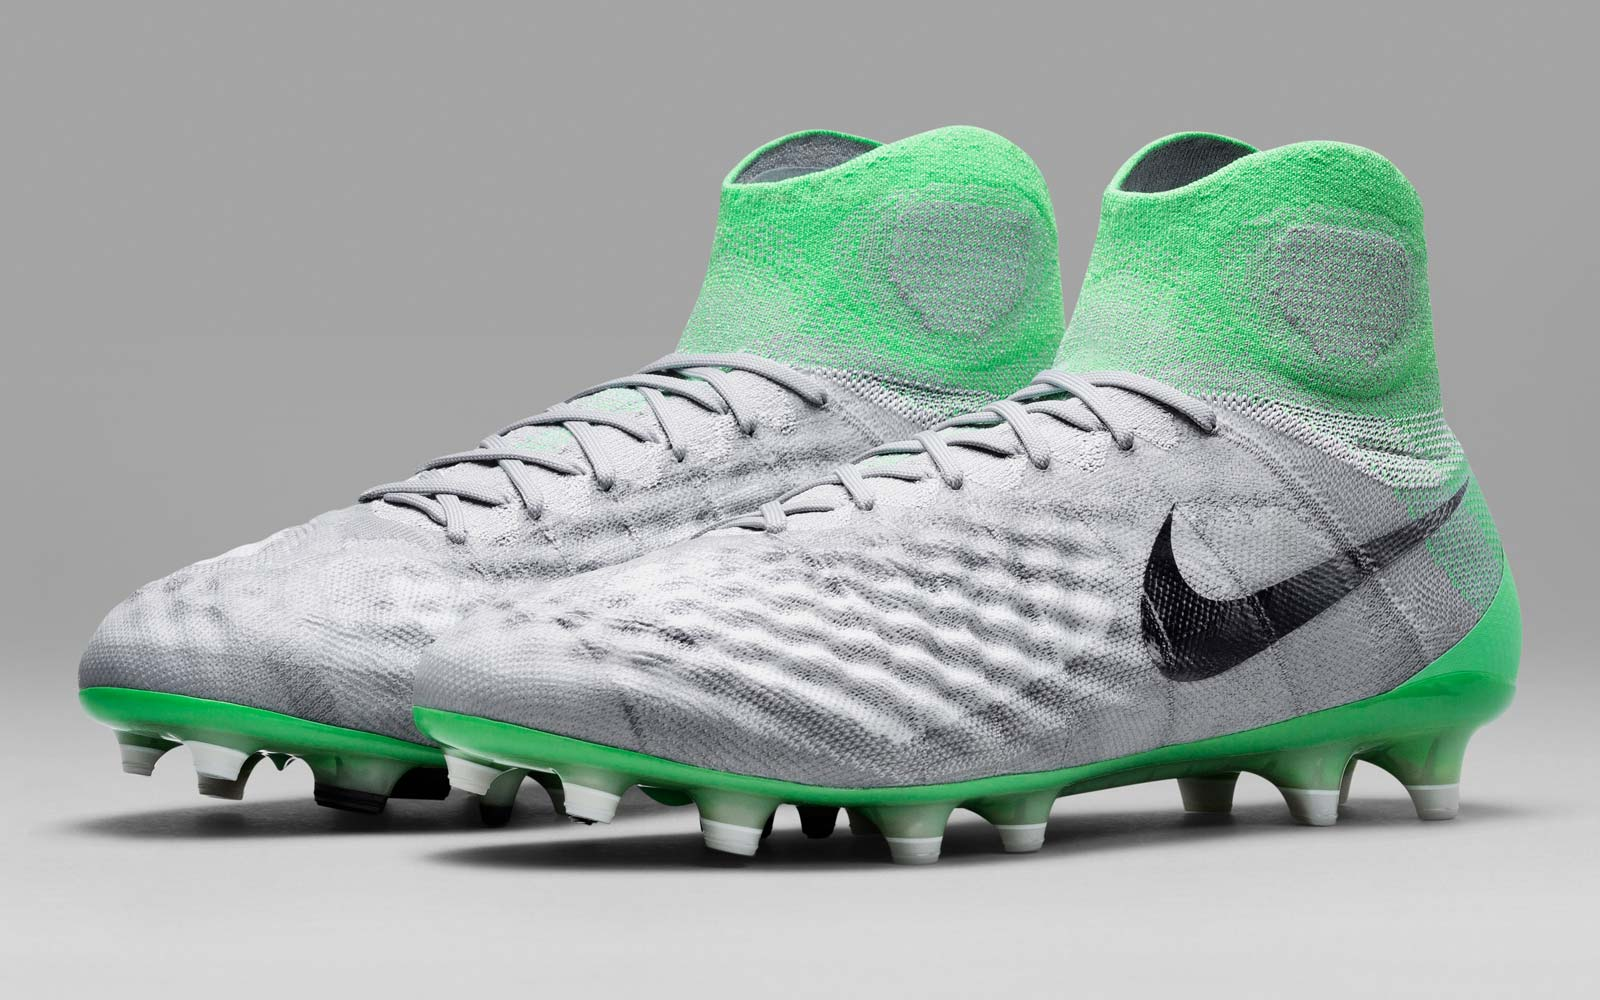 wolf grey electro green nike magista obra ii womens